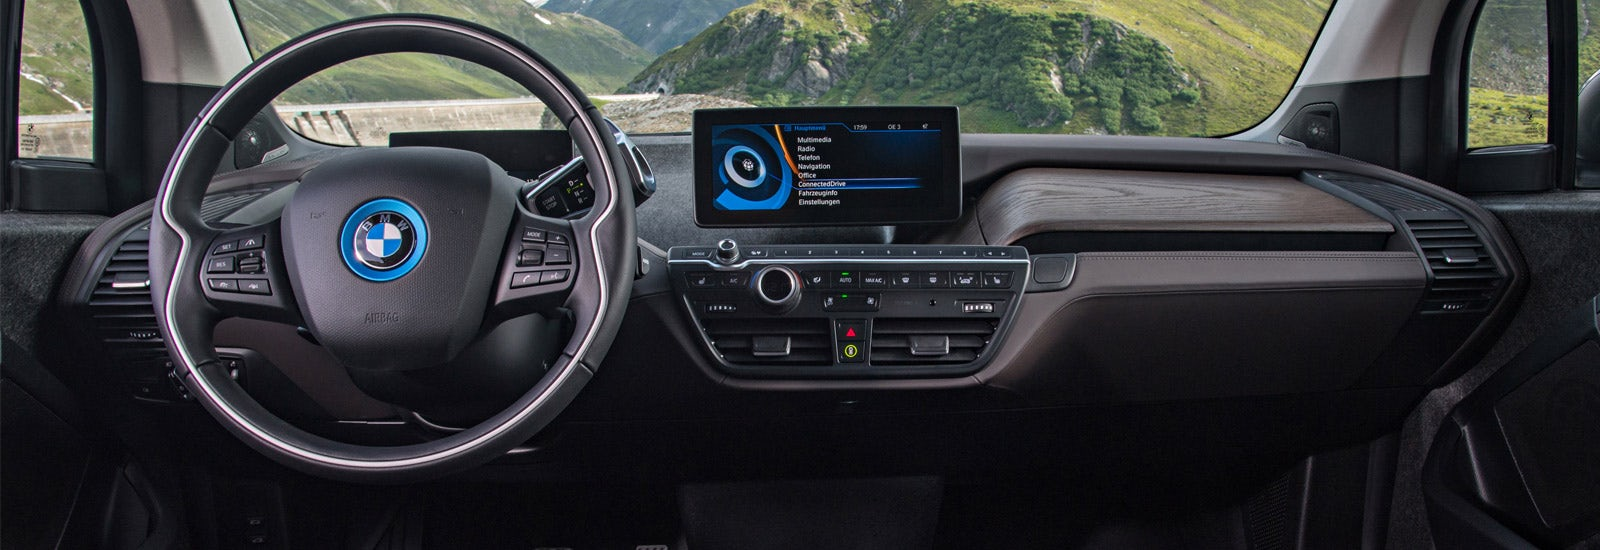 The I4 S Interior Might Take Inspiration From I3 Shown Here